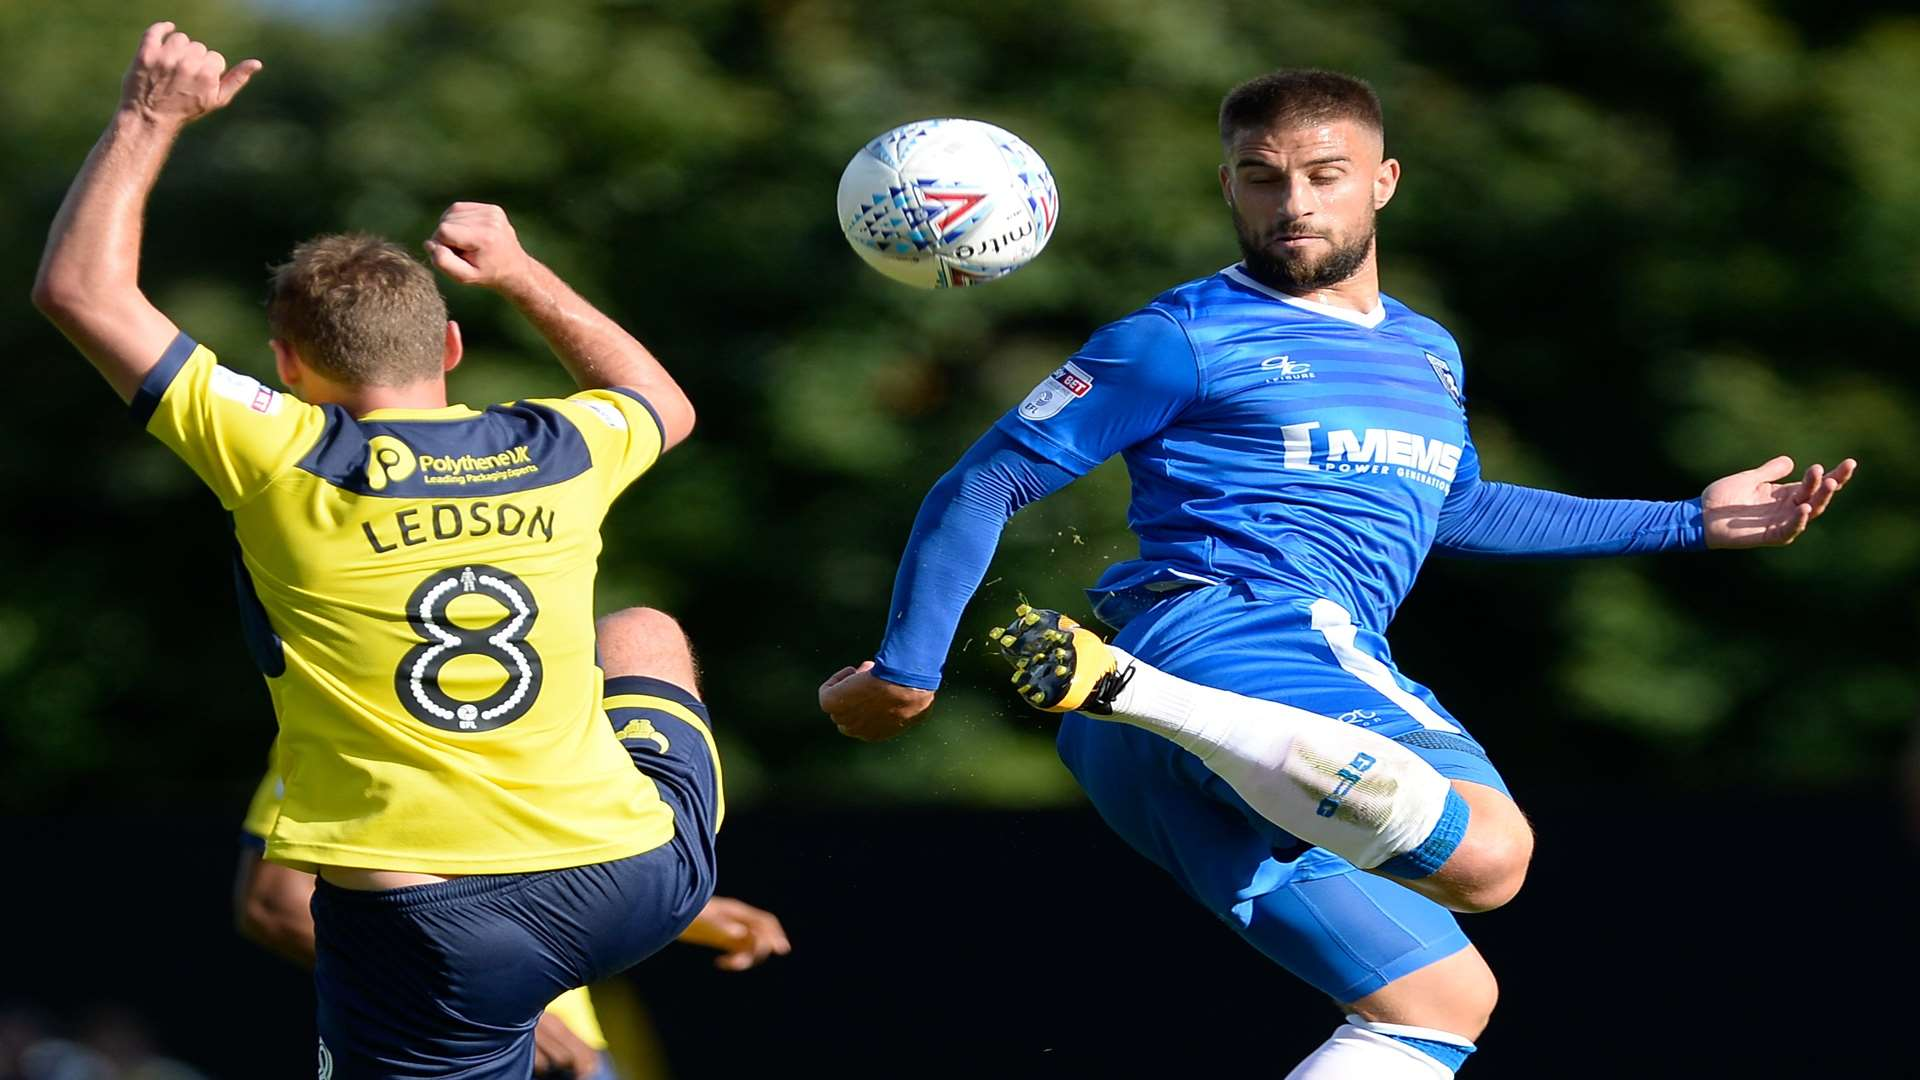 Gillingham's Max Ehmer shows a deft touch in front of Oxford's Ryan Ledson. Picture: Ady Kerry